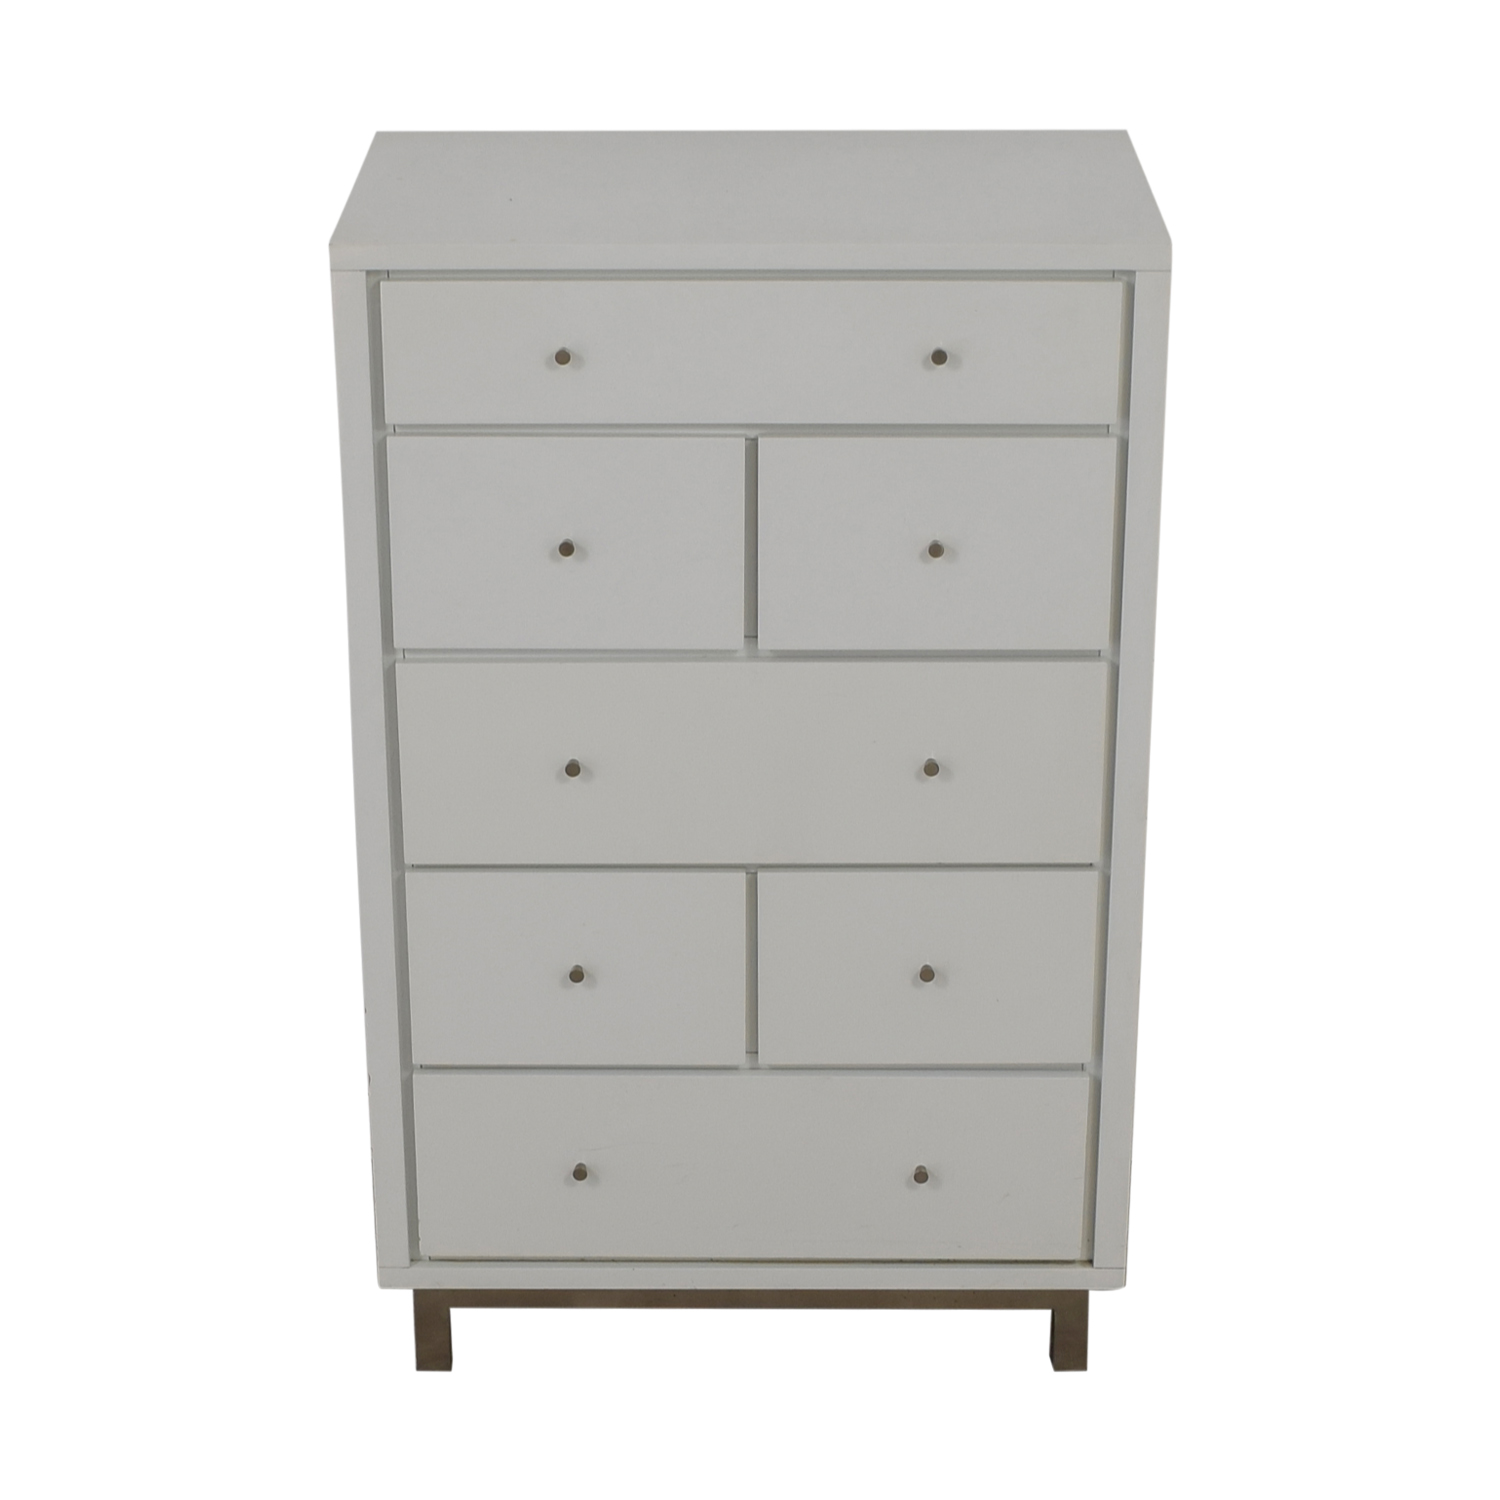 Crate & Barrel Crate & Barrel Cubix Seven Drawer Chest for sale